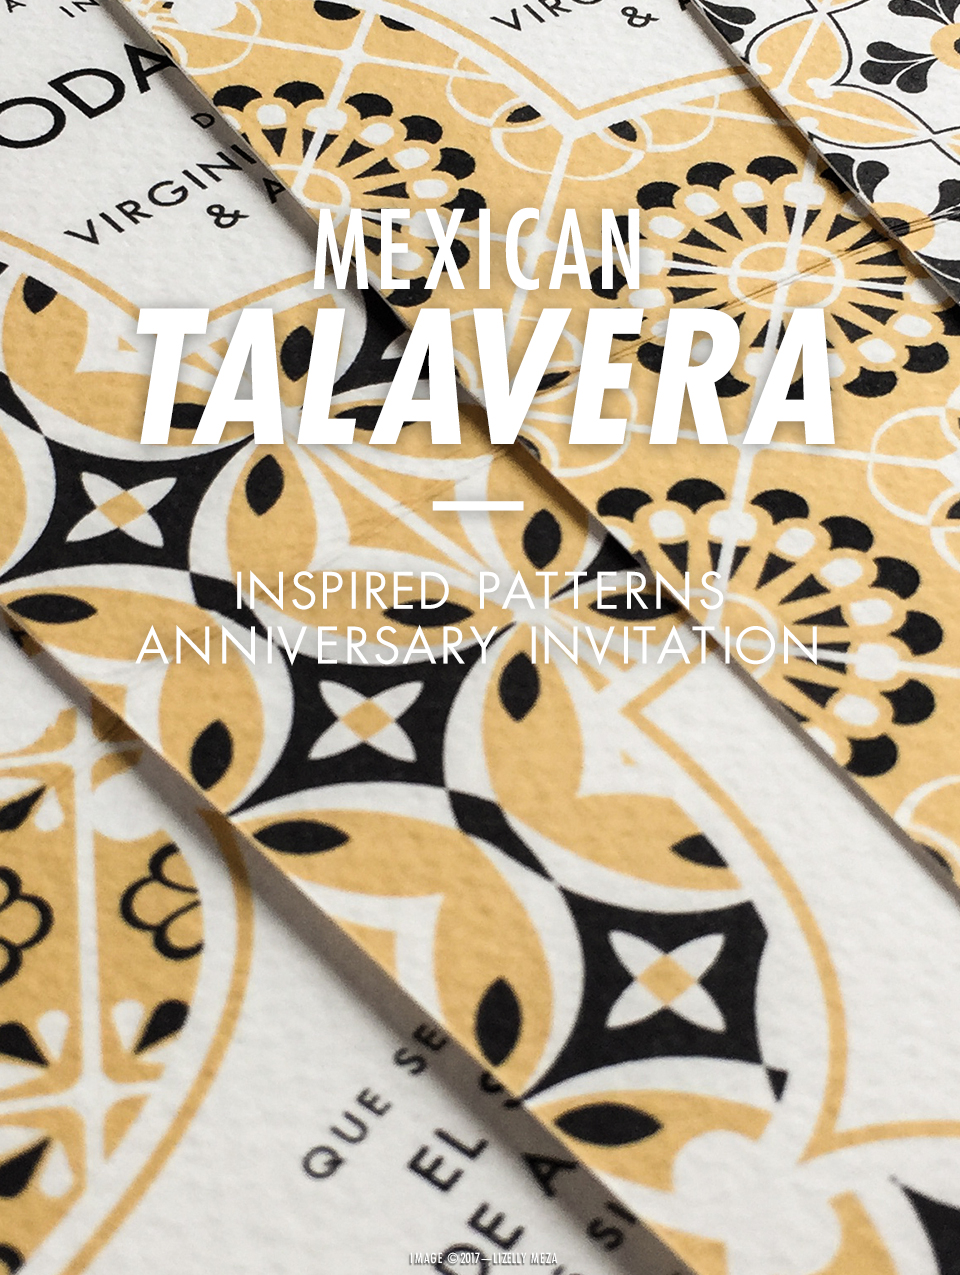 Mexican Talavera Tile-inspired Patterns for a 50th Anniversary Invitation // Curiosities Allowed // Creative blog of Lizelly Meza